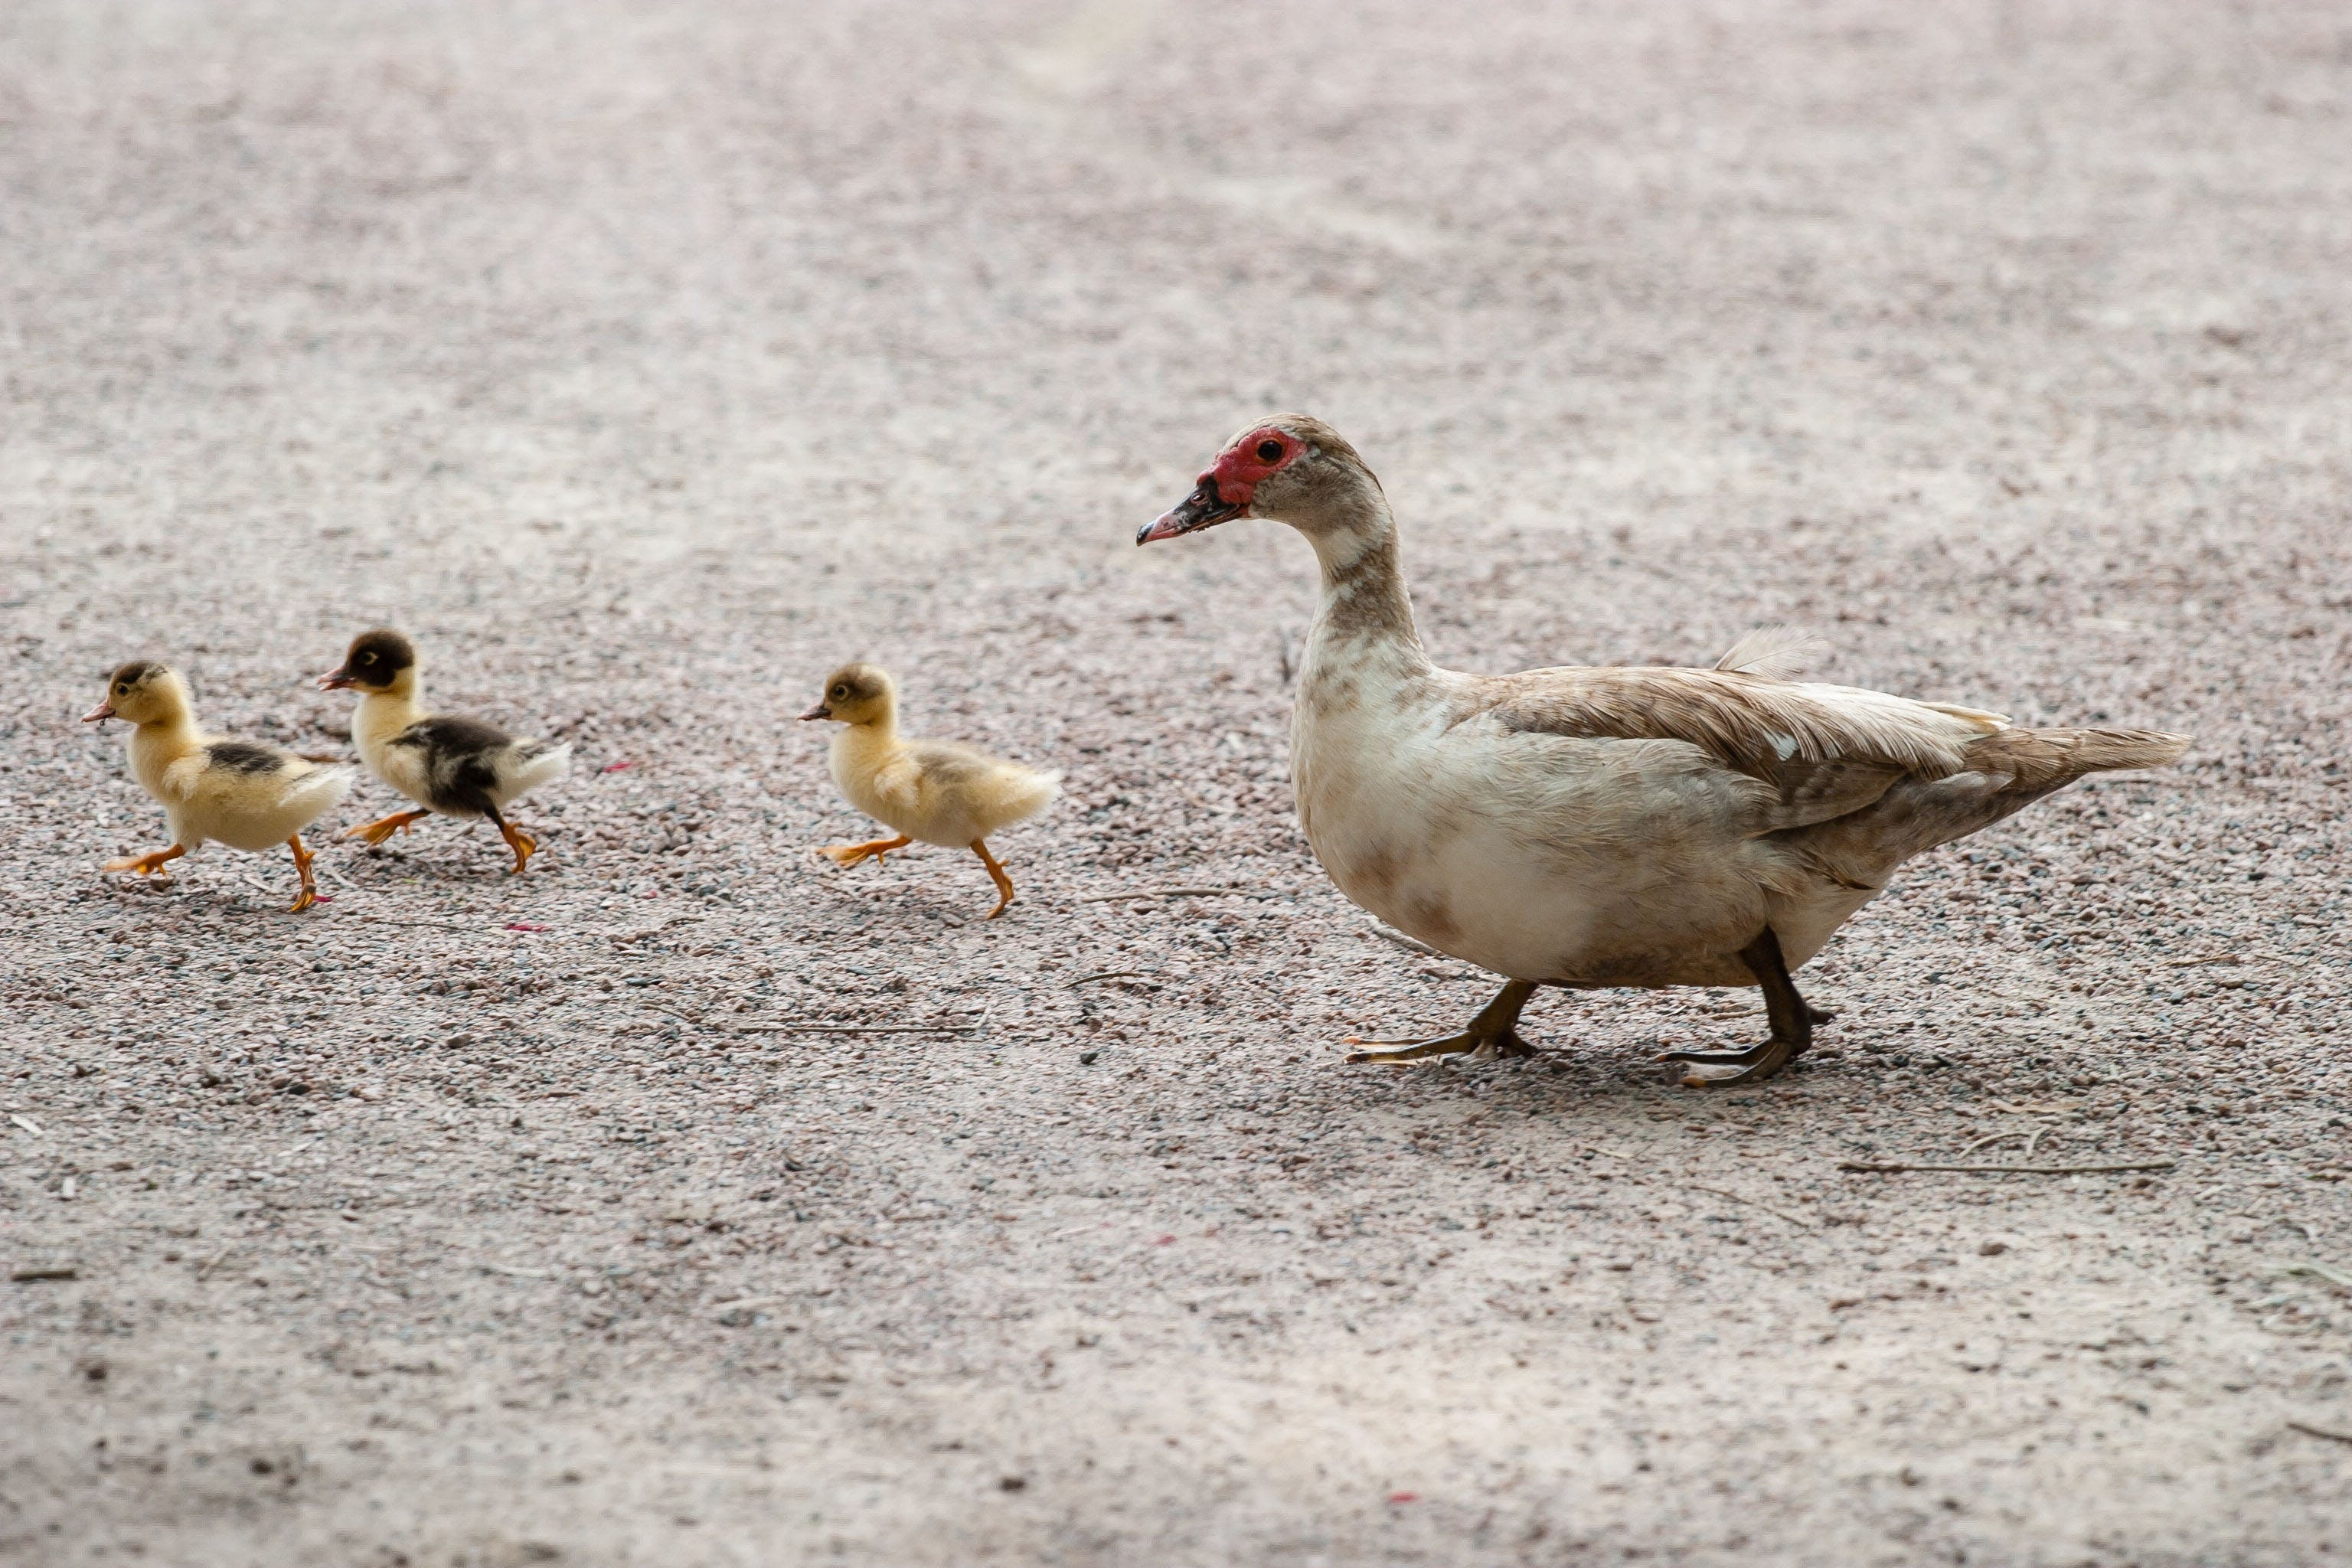 White and Brown Duck With Yellow and Black Ducklings Walking in Gray Floor during Daytime